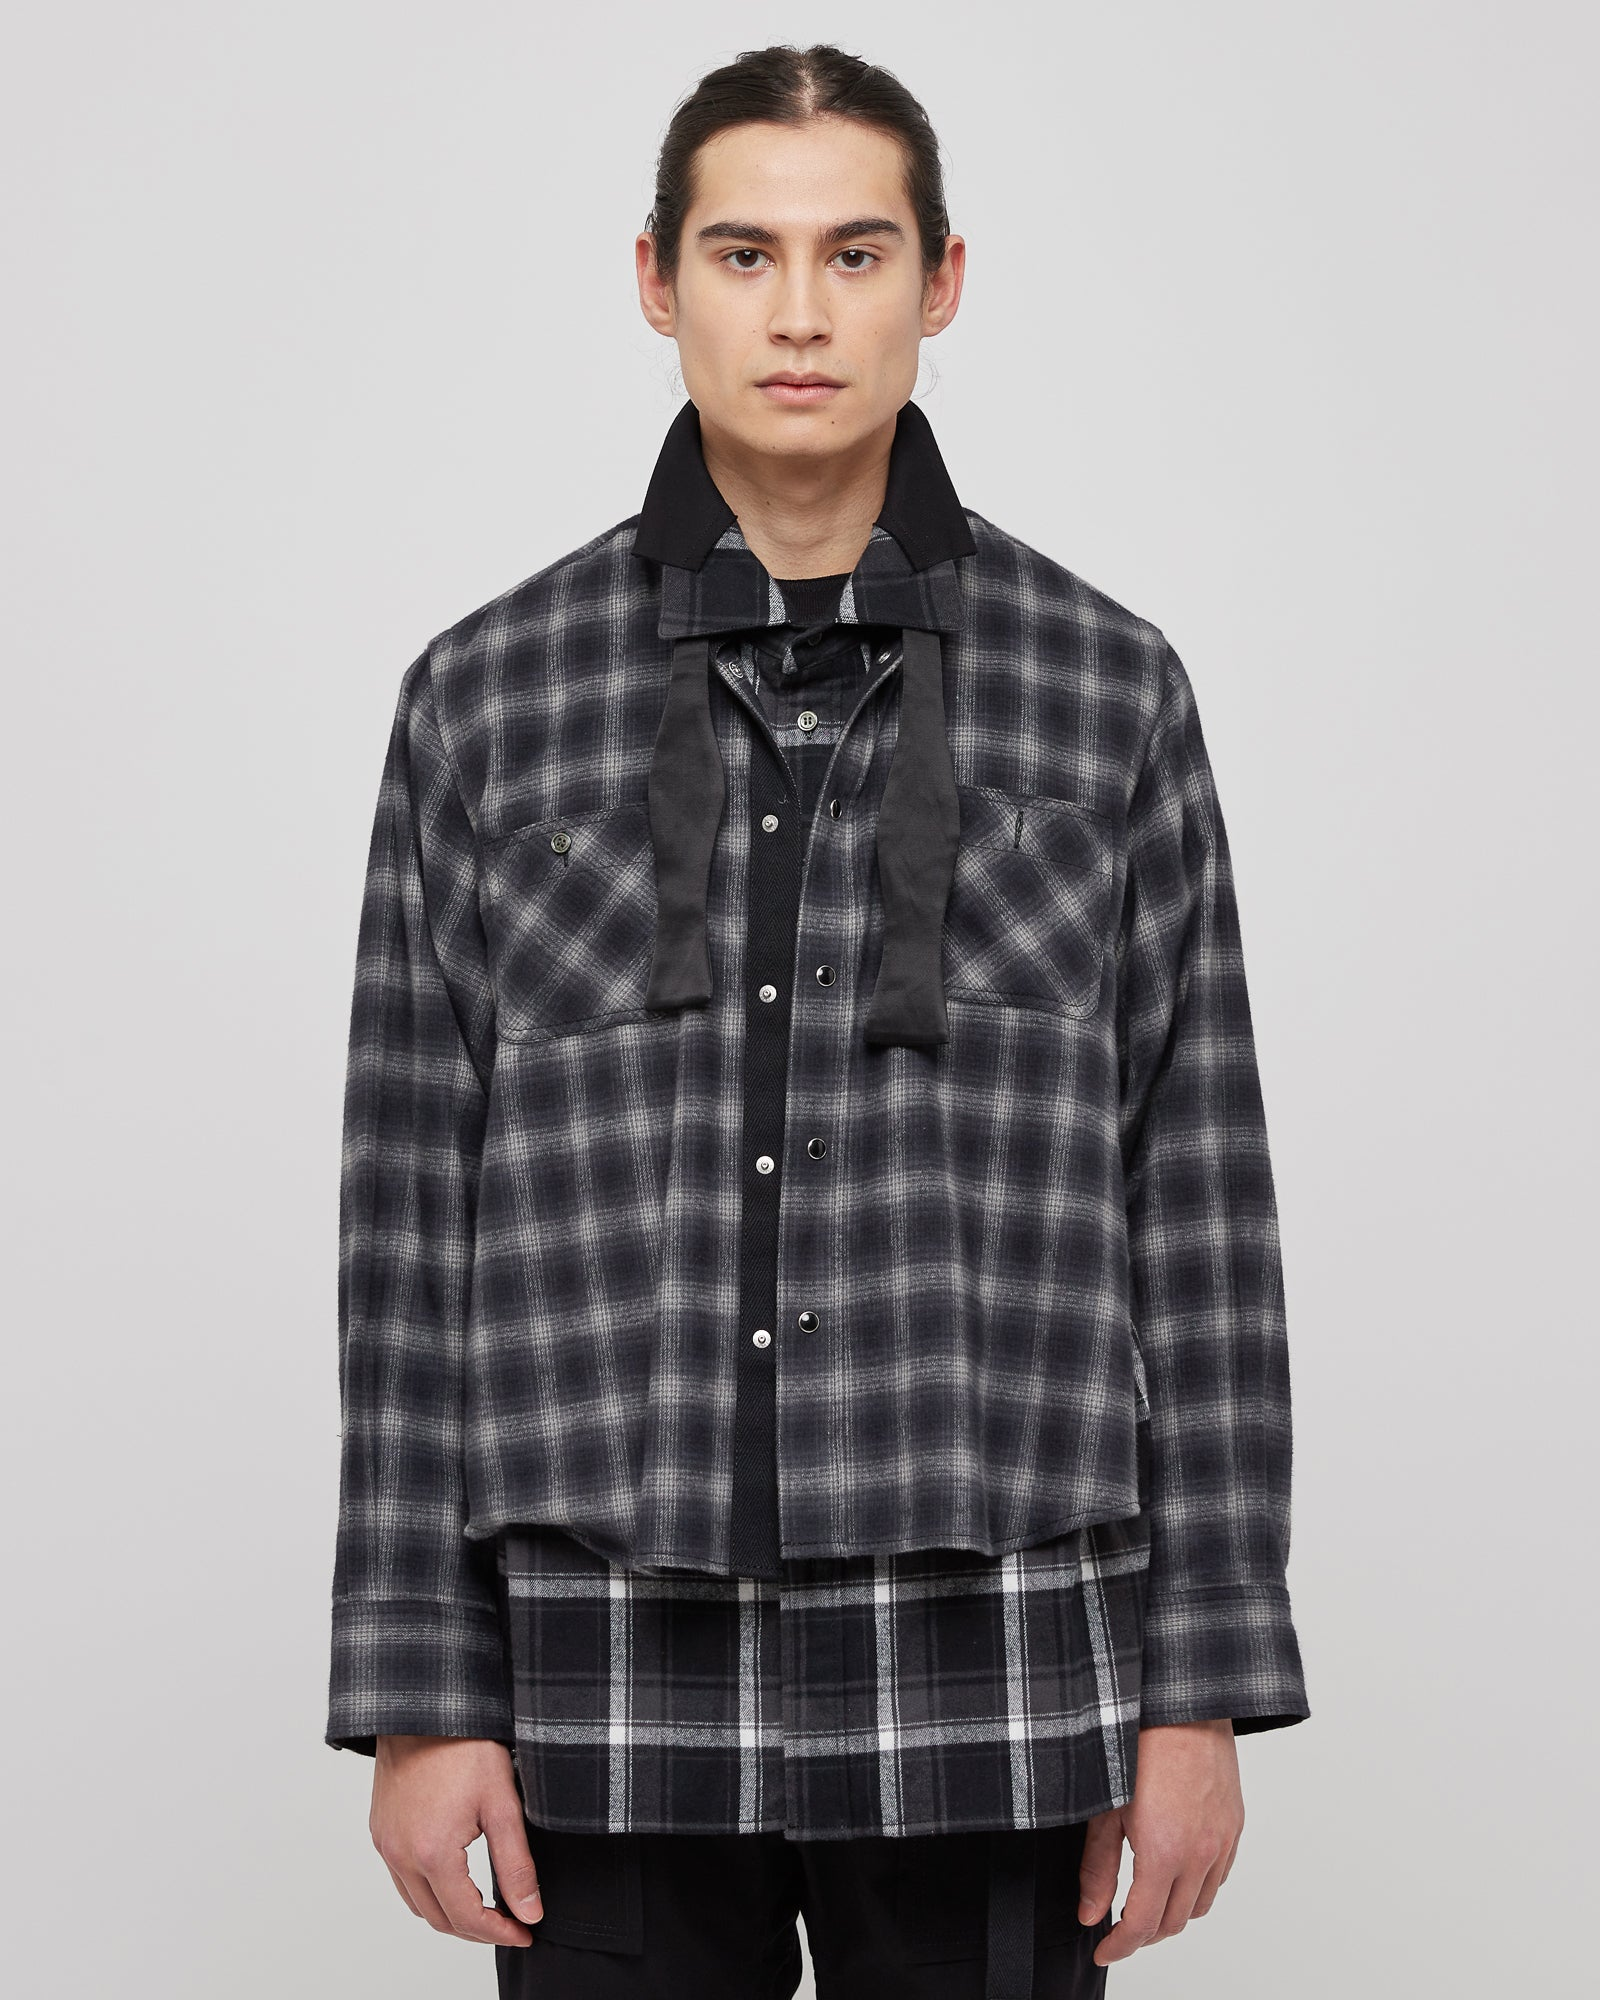 Ombre Check Shirt in Black